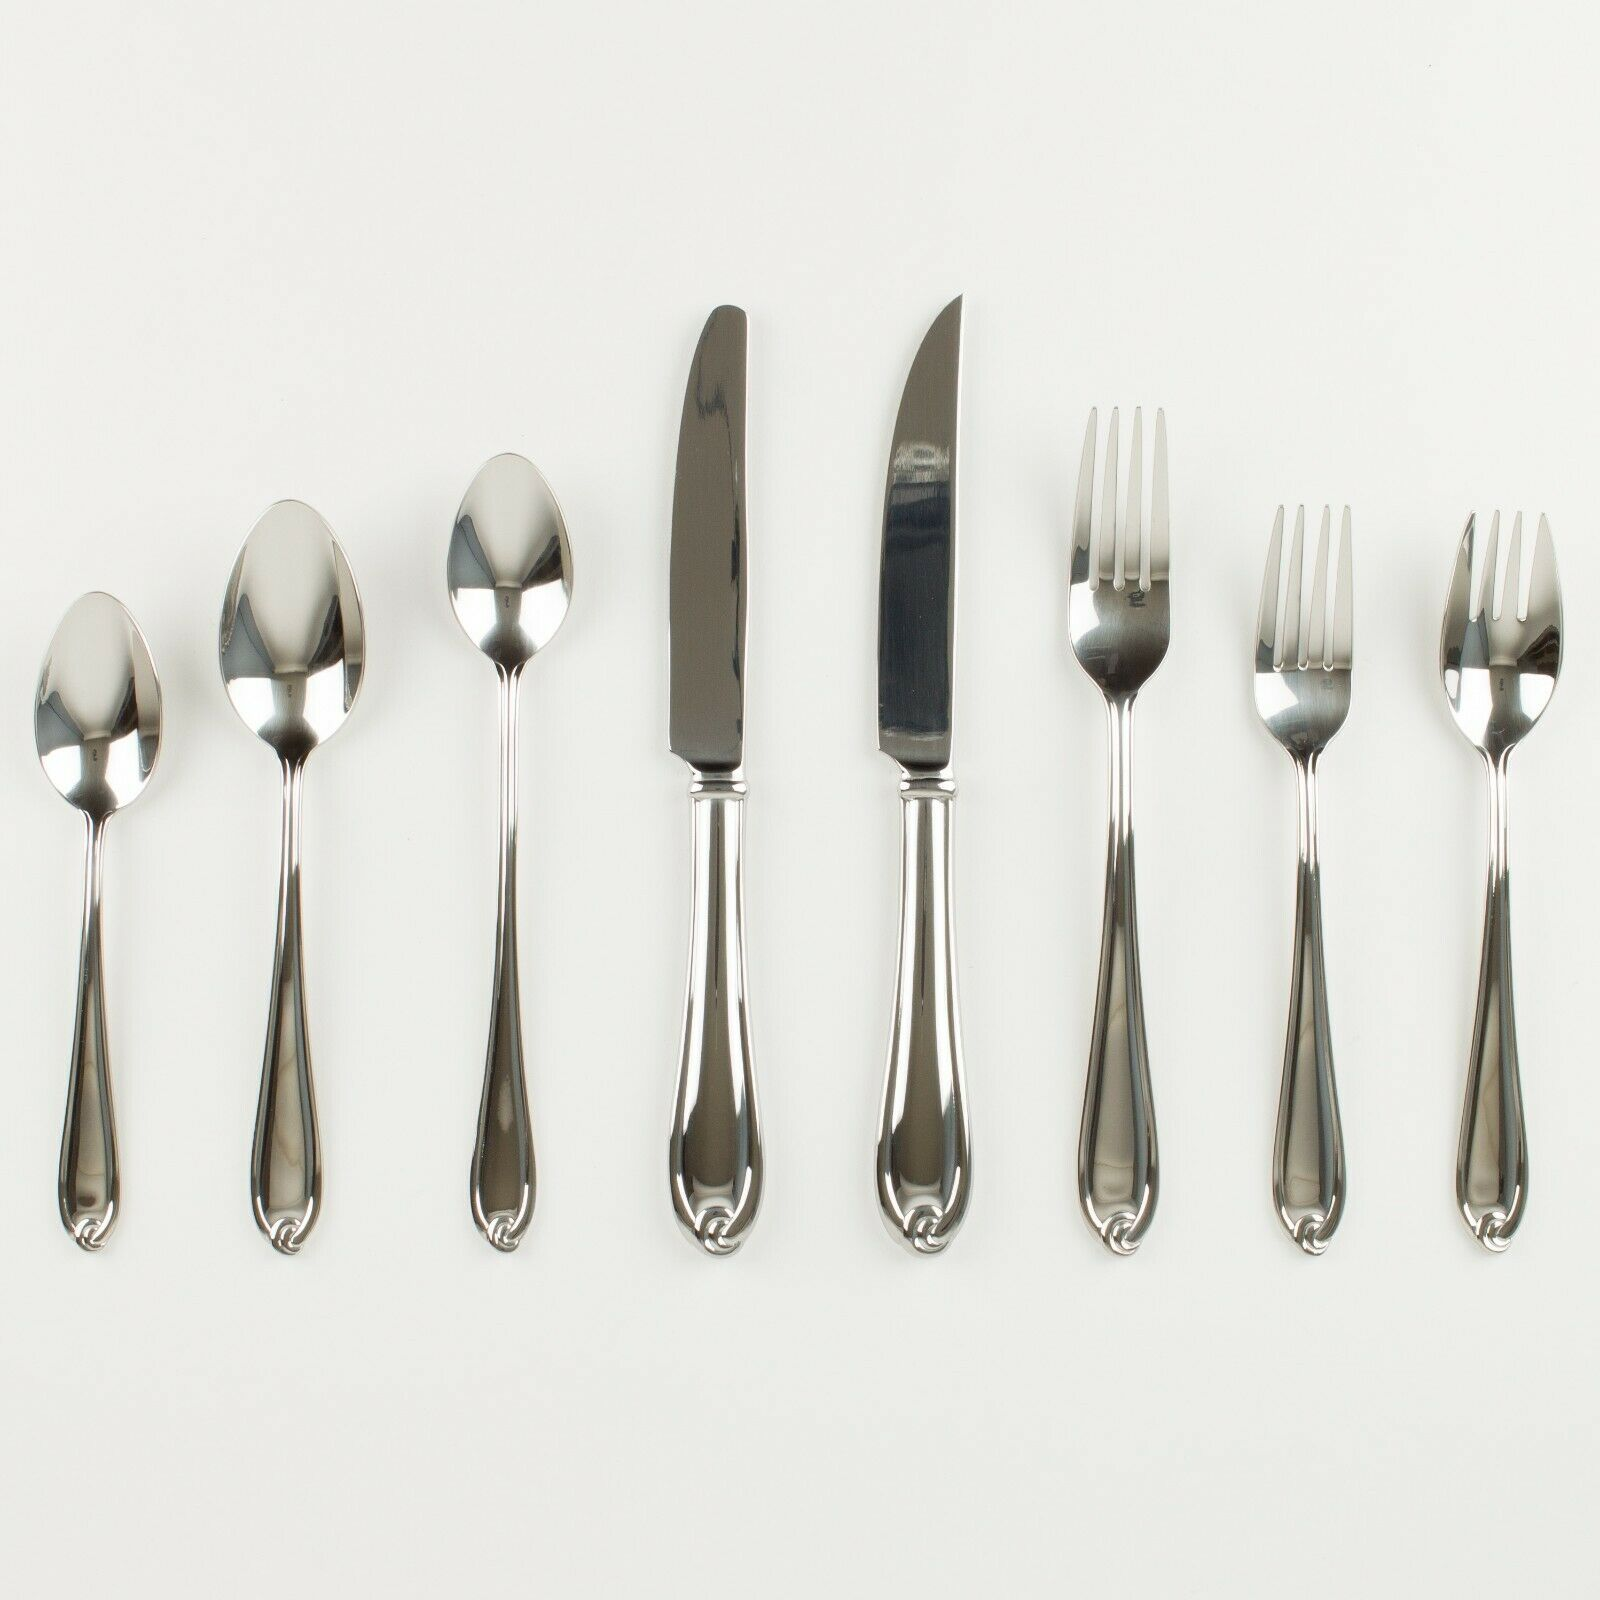 Individual Flatware Pieces, B3G1 Free, Hartleigh by Lenox